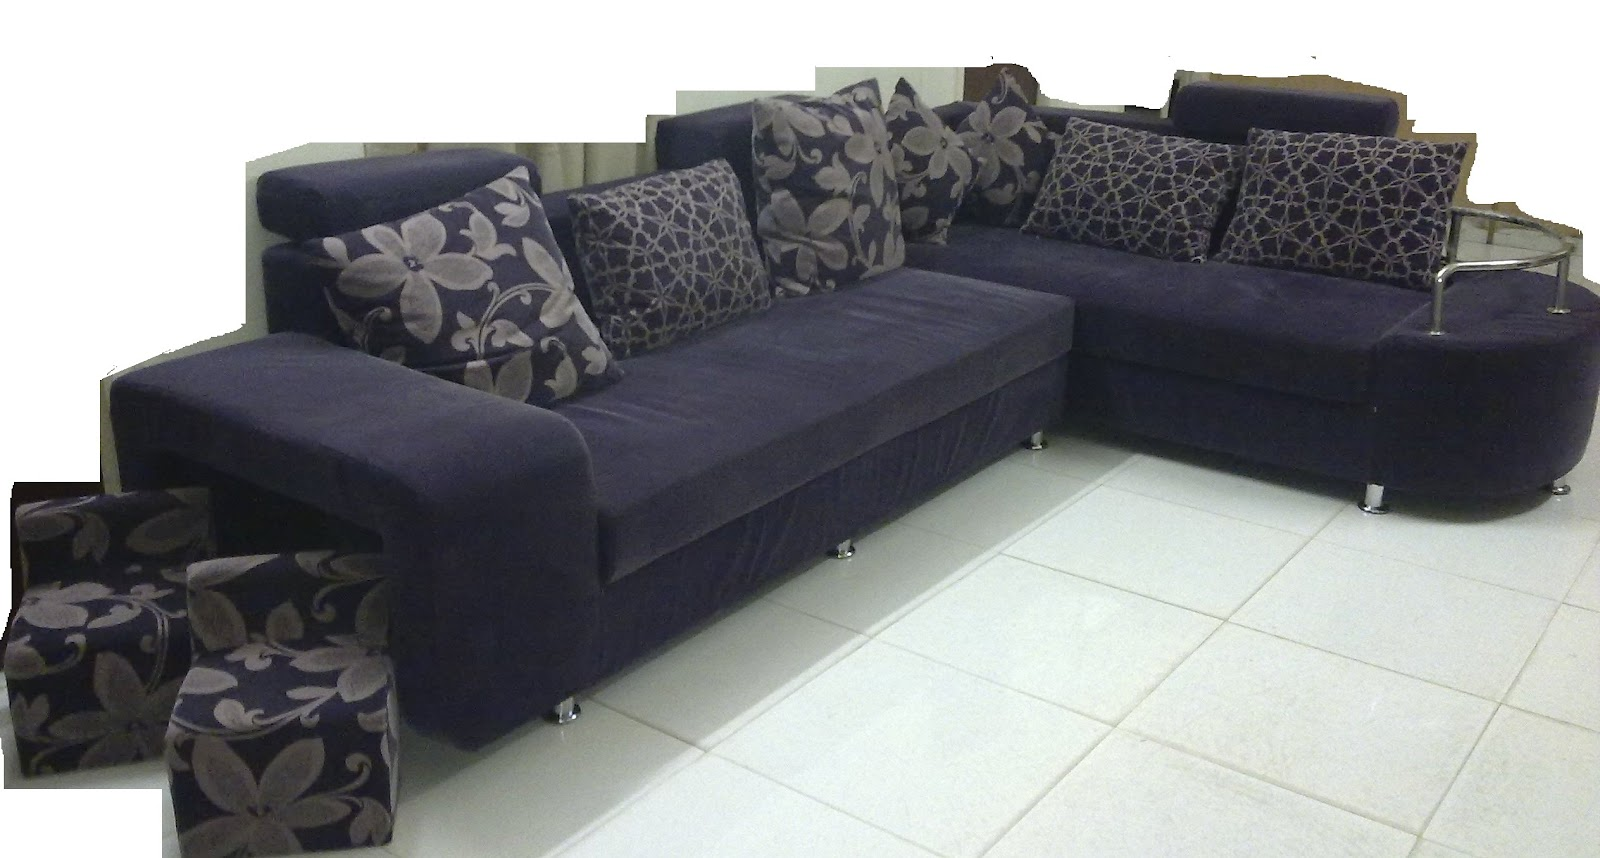 Sofa Sets In Hyderabad Online Comprar Bizkaia Union Furniture And Secunderabad